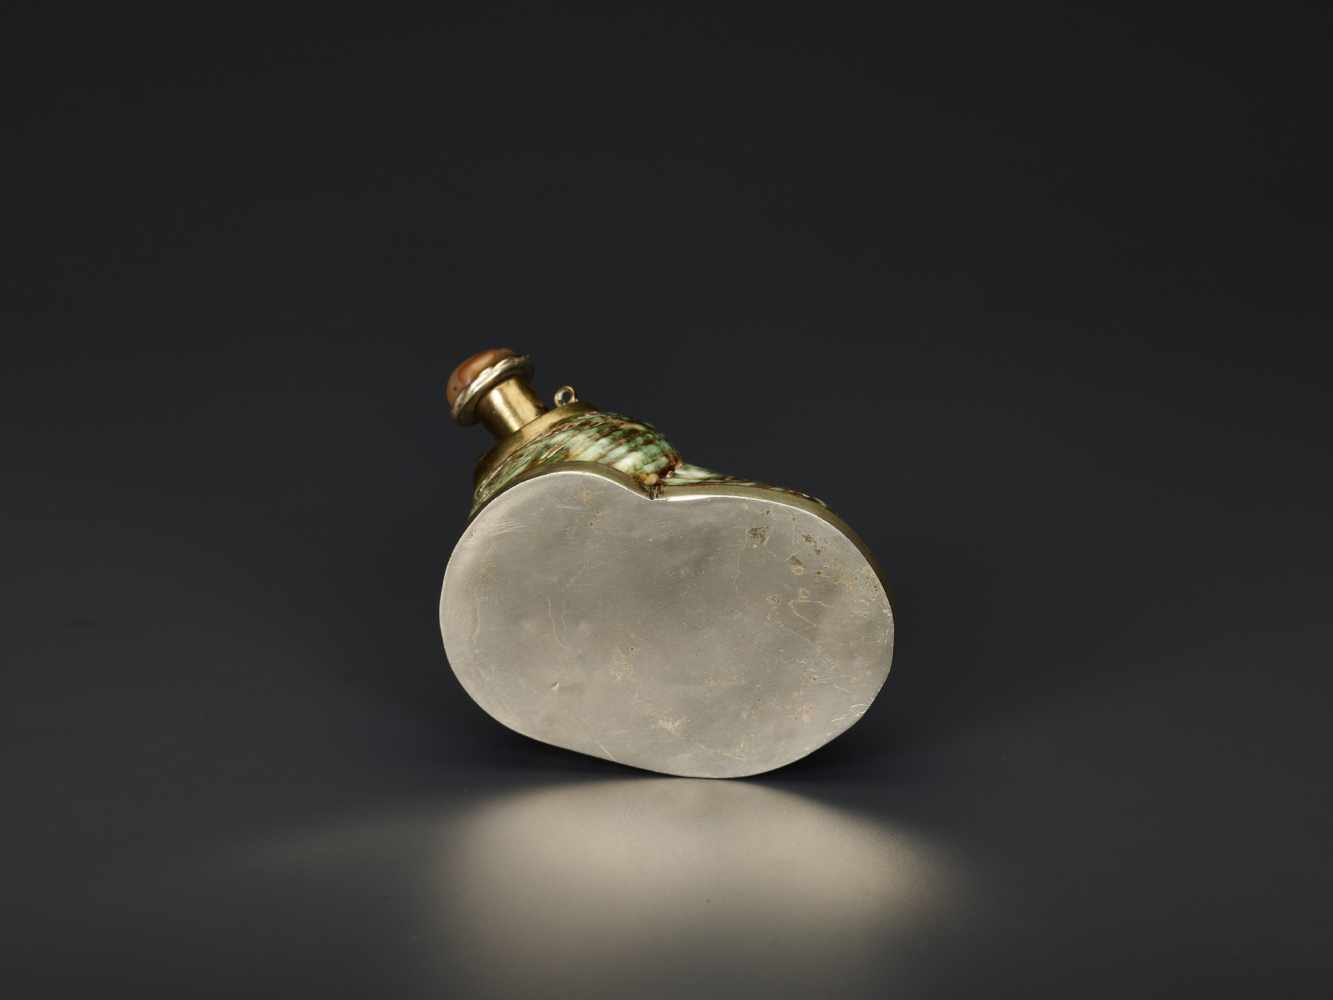 TURBO CONCH PERFUME CONTAINER WITH AGATE STOPPER, 19th CENTURYTurbo conch, silver plate metal and - Image 6 of 6